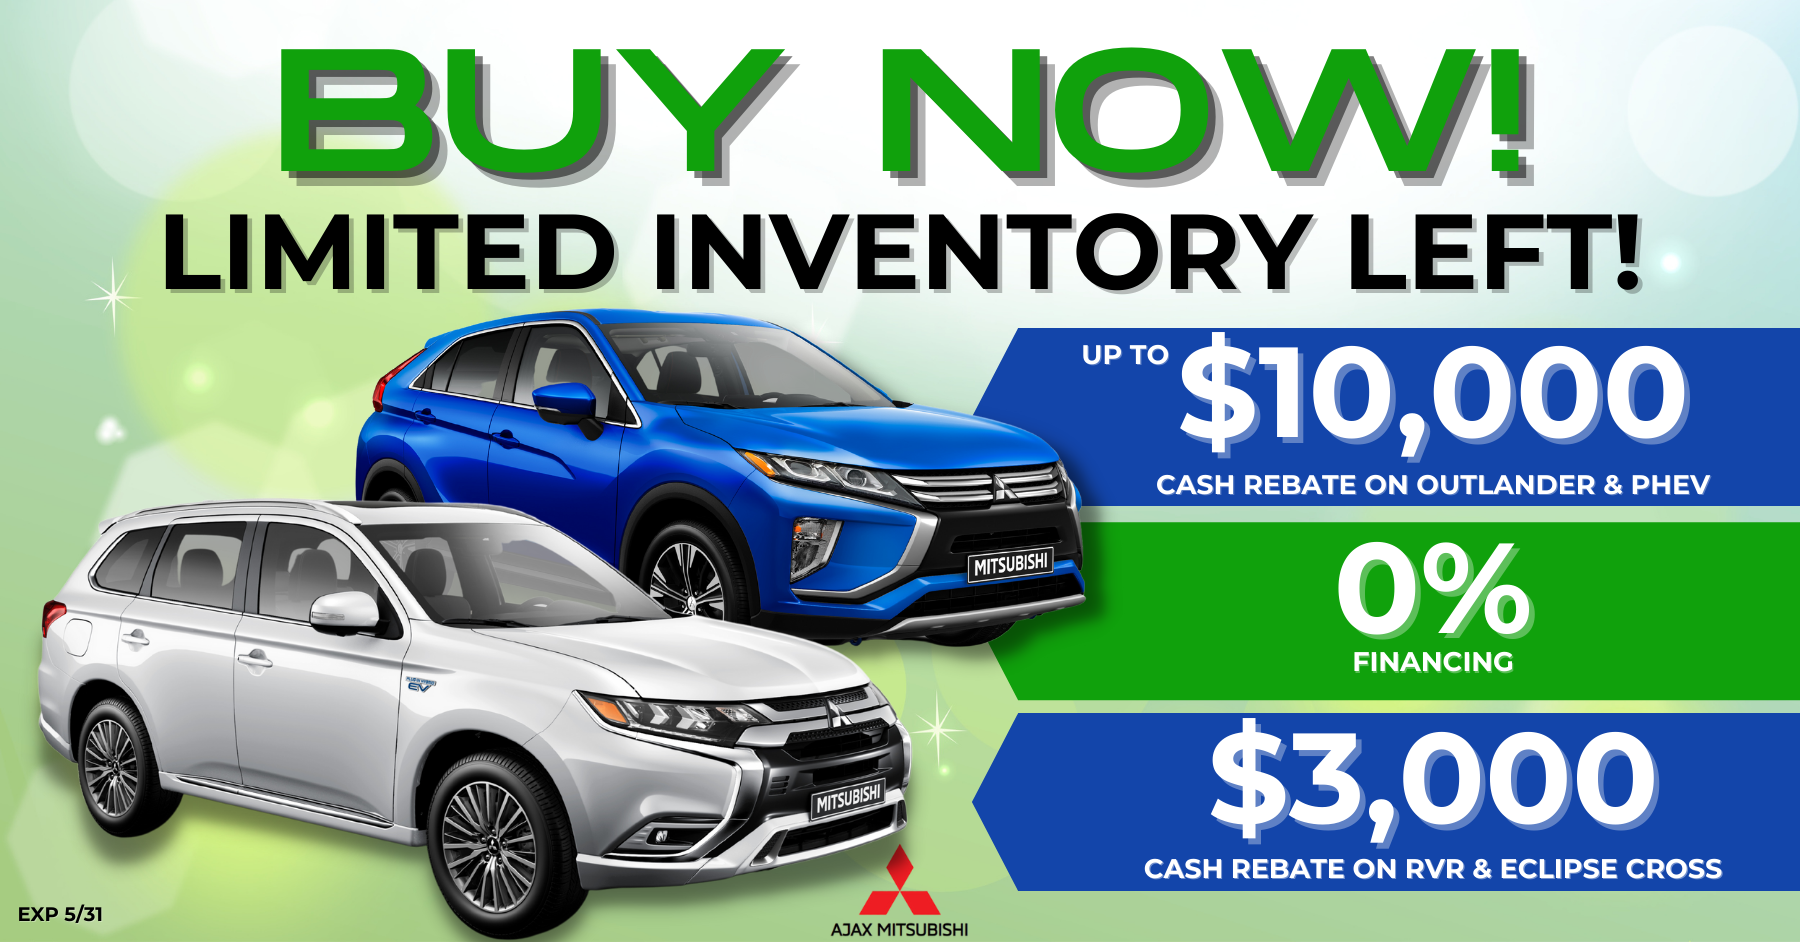 Limited Inventory Left, Ajax Mitsubishi